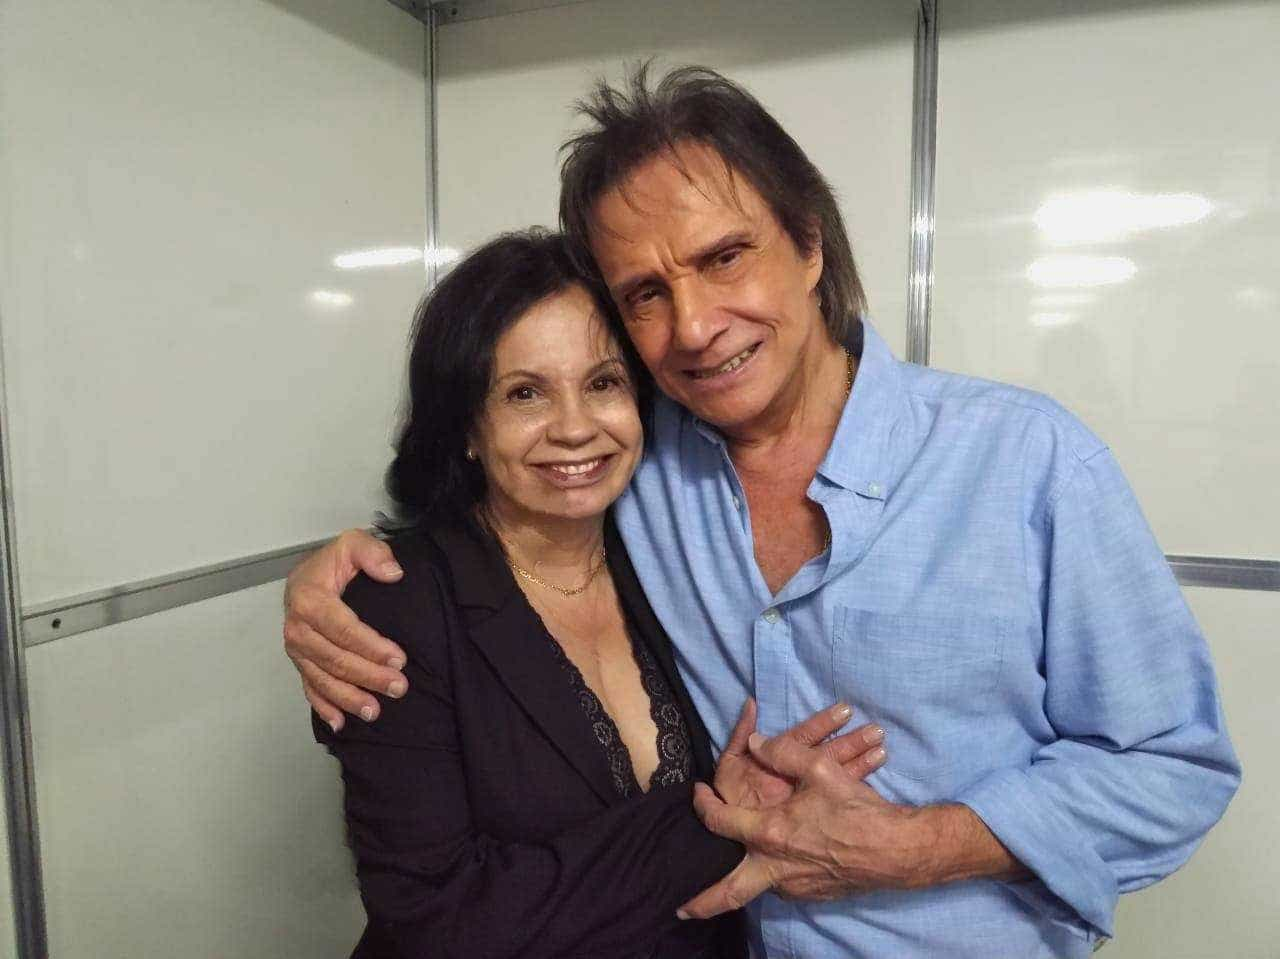 Isolda Bourdot, a compositora do Rei, sofre infarto e morre aos 61